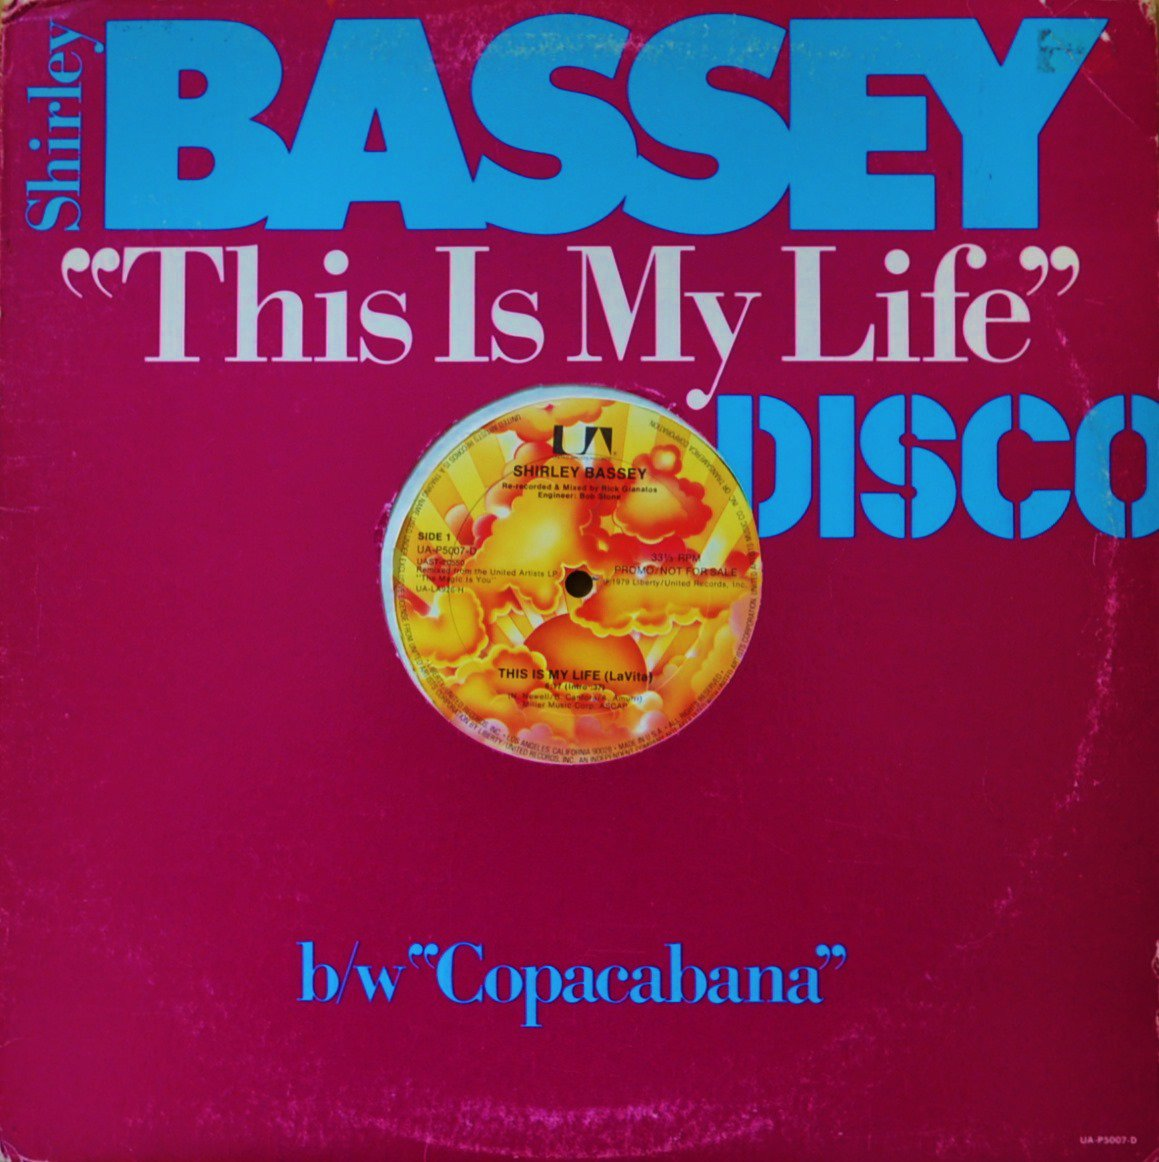 SHIRLEY BASSEY / COPACABANA (AT THE COPA) / THIS IS MY LIFE (LA VITA) (12